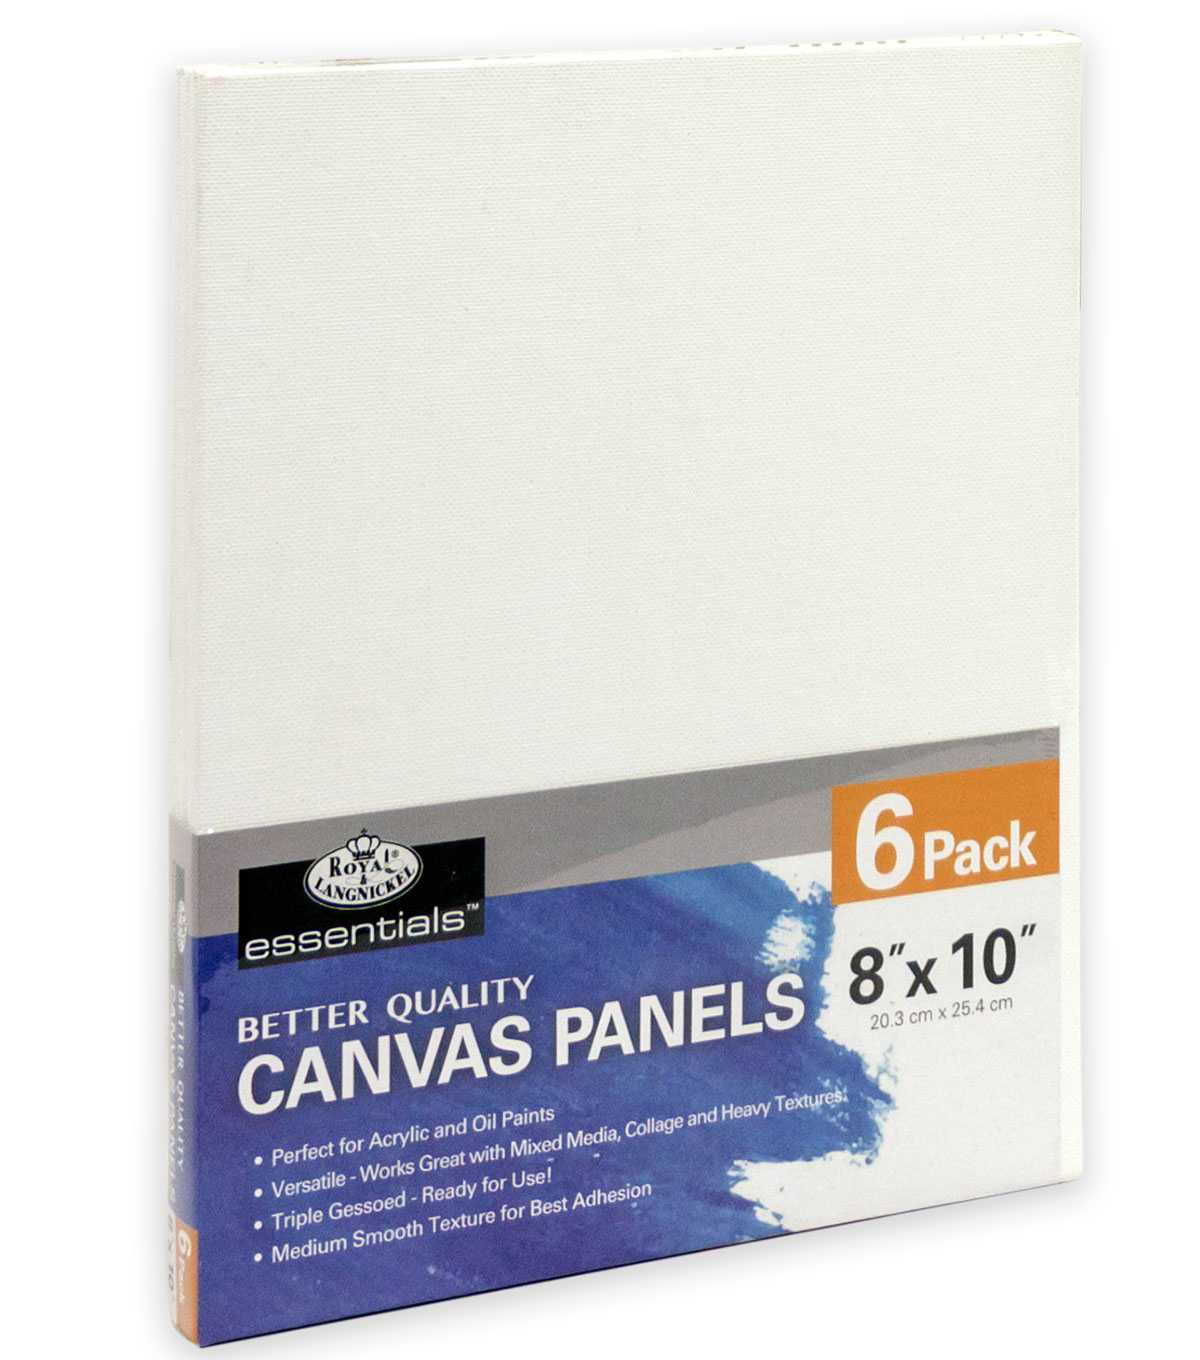 Royal & Langnickel 8\u0022x10\u0022 Canvas Panels 6pk